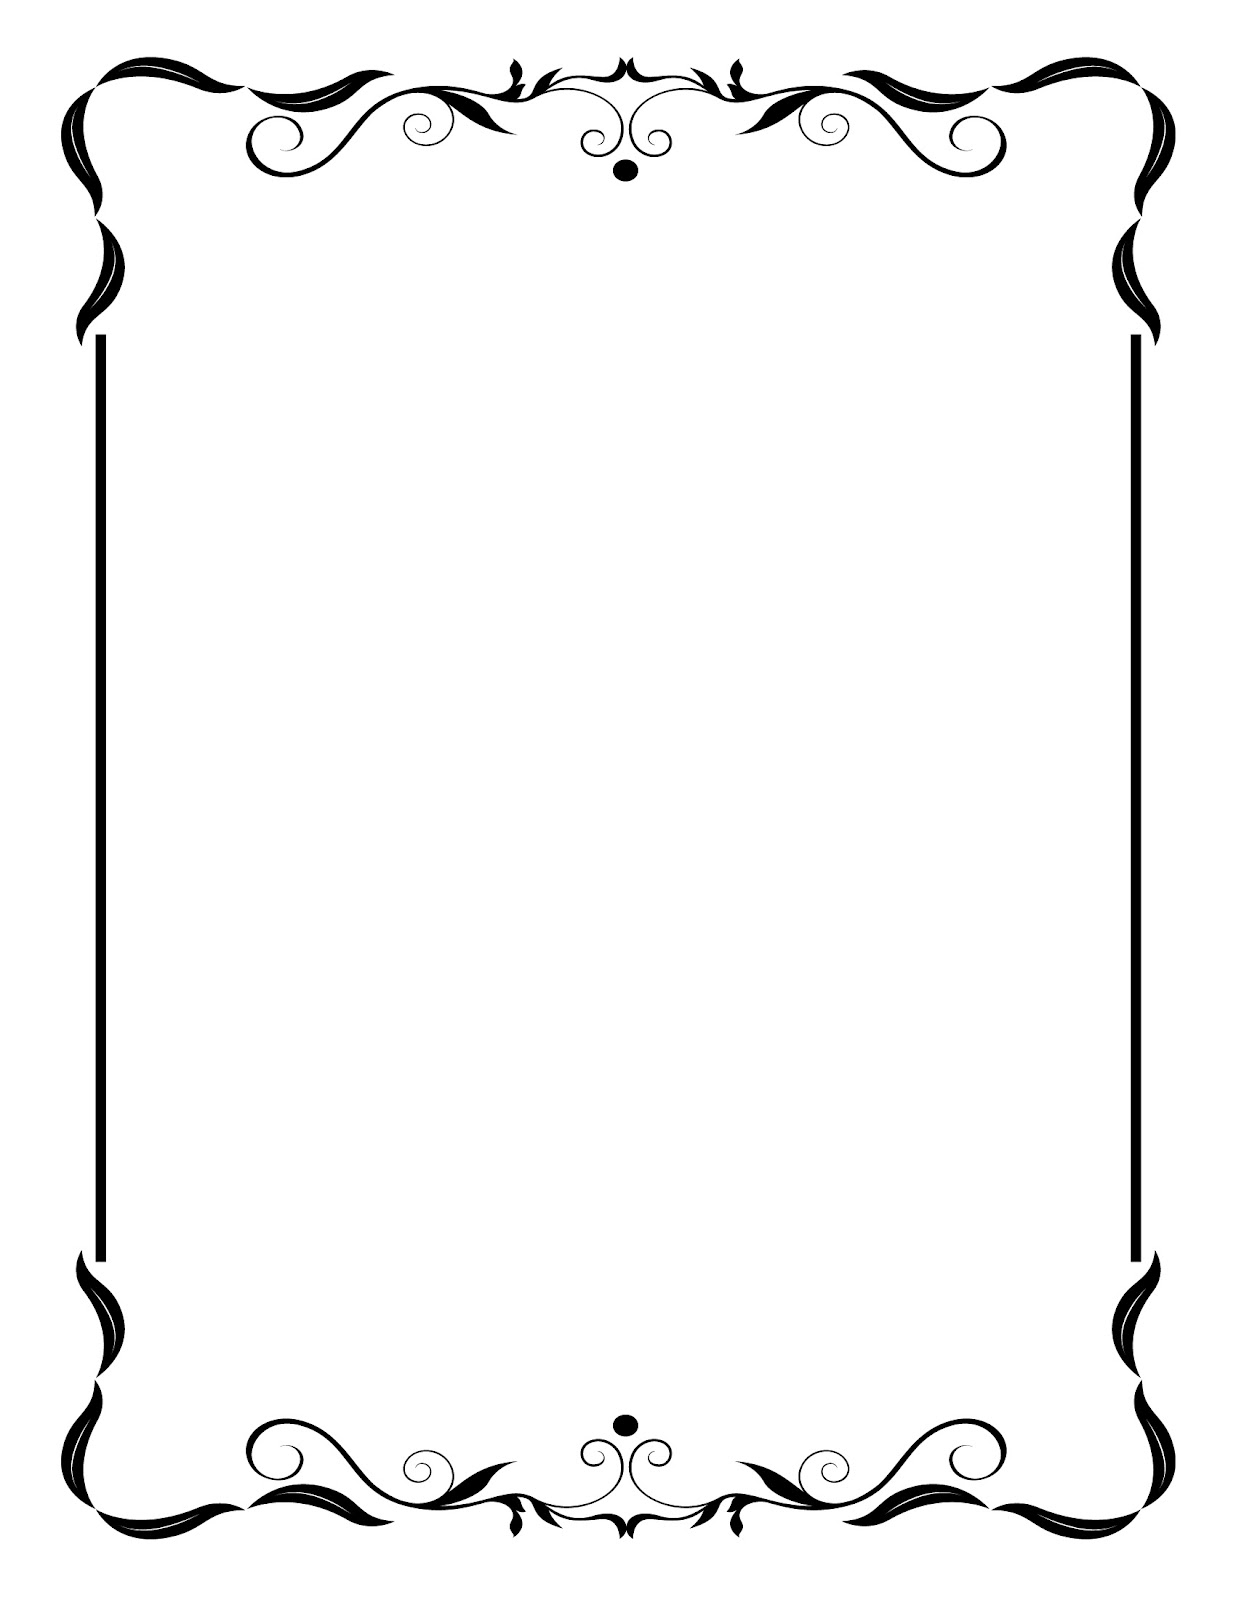 Frame clipart #1, Download drawings